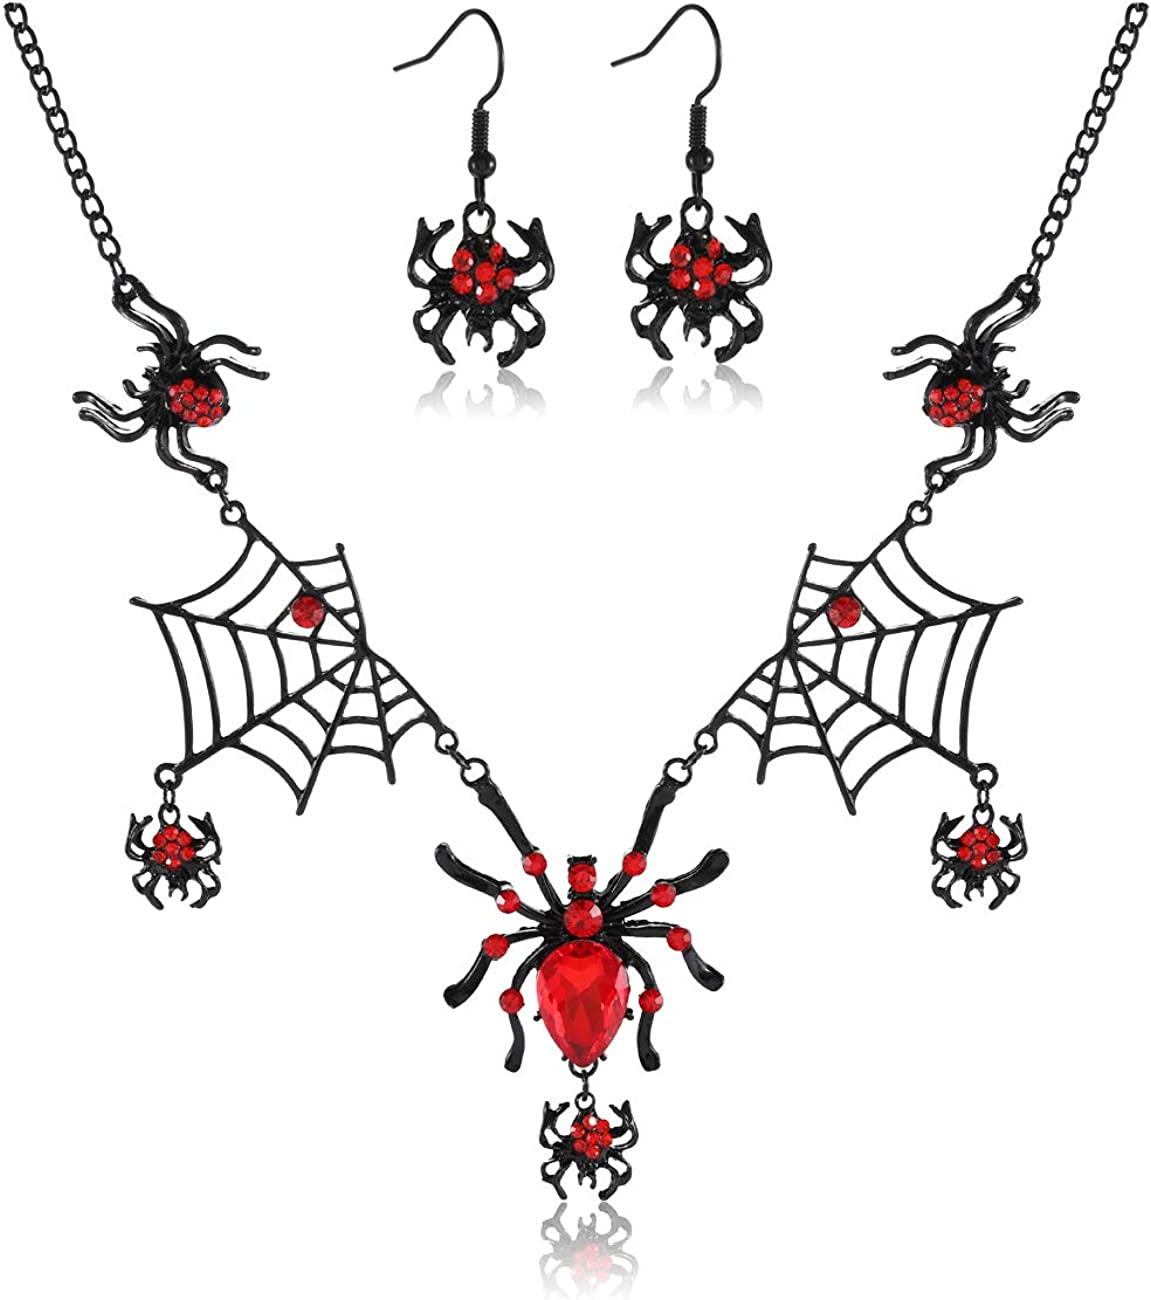 ARATLENCH Halloween Spider Earrings Necklace Gothic Rhinestone Spider Dangle Earrings Black Statement Spider Web Pendant Necklace Jewelry Set Halloween Party Costume for Women Girls